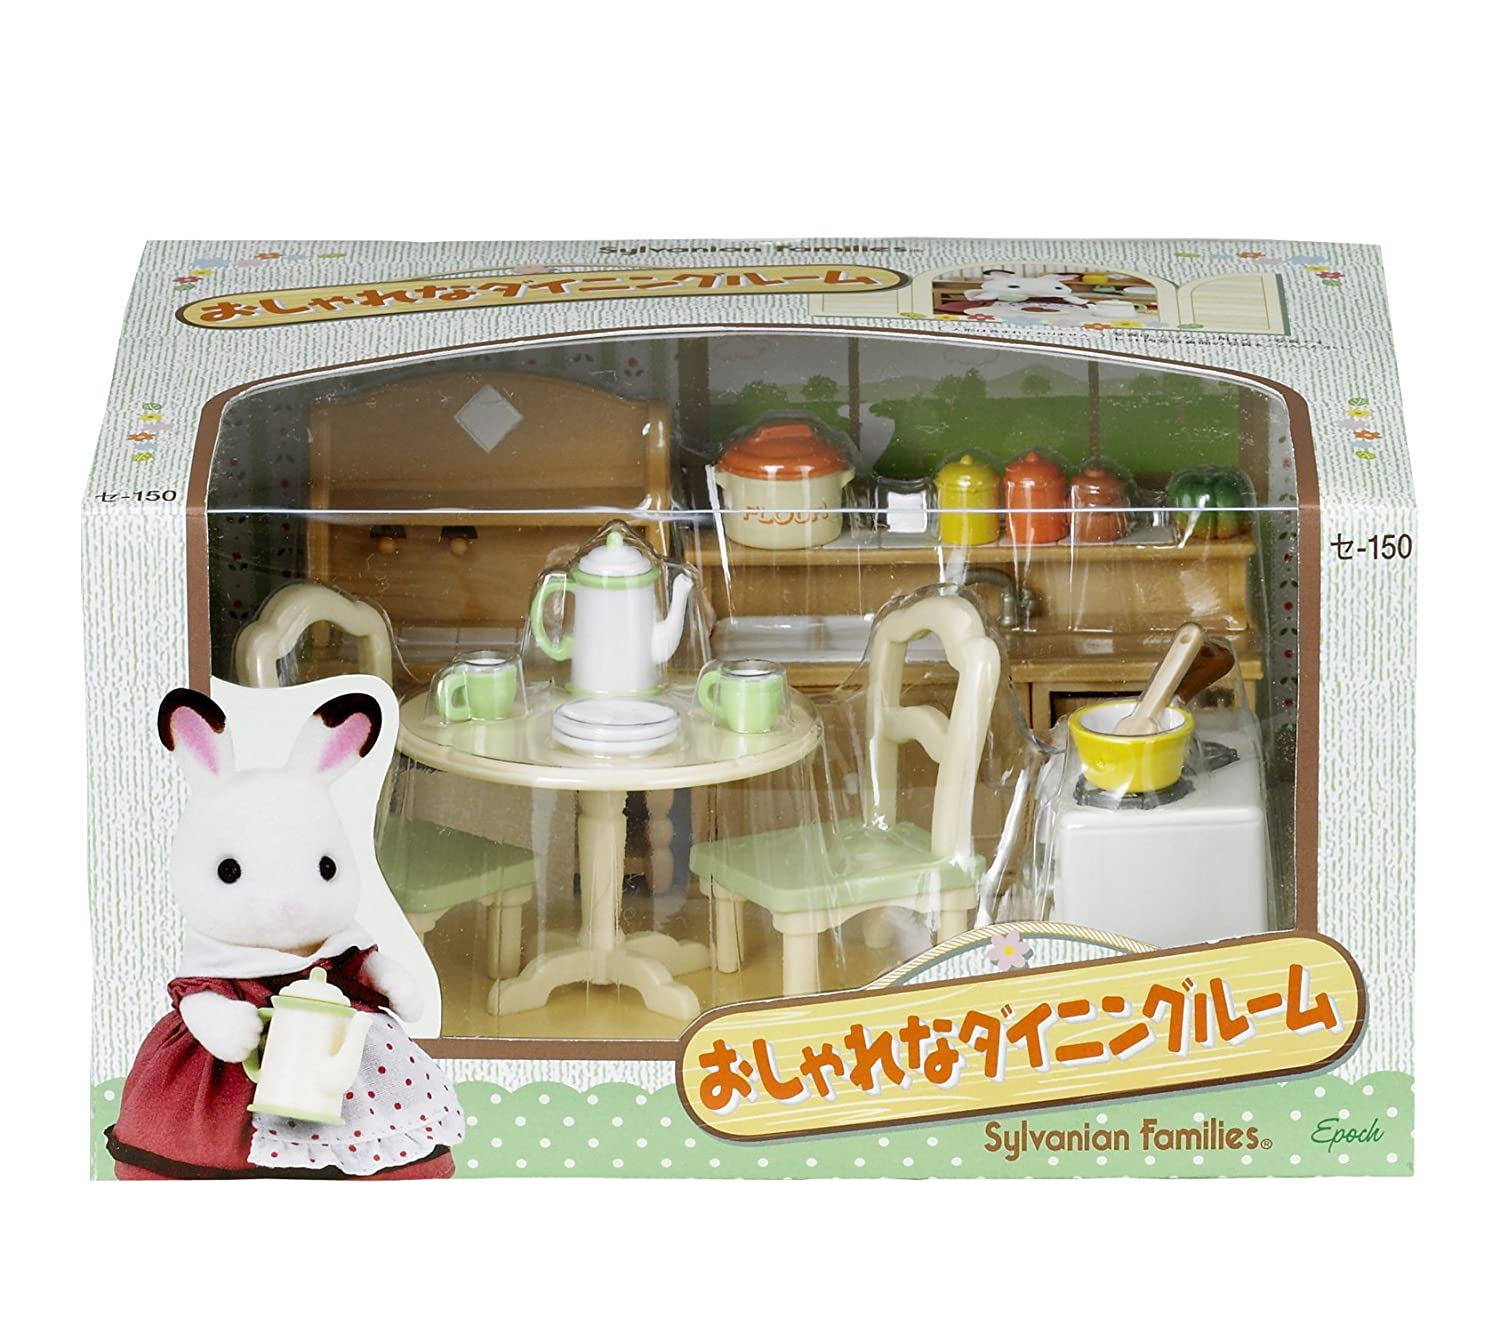 Epoch Sylvanian Families Sylvanian Family?Dining Room Se-150 (japan import) セ-150